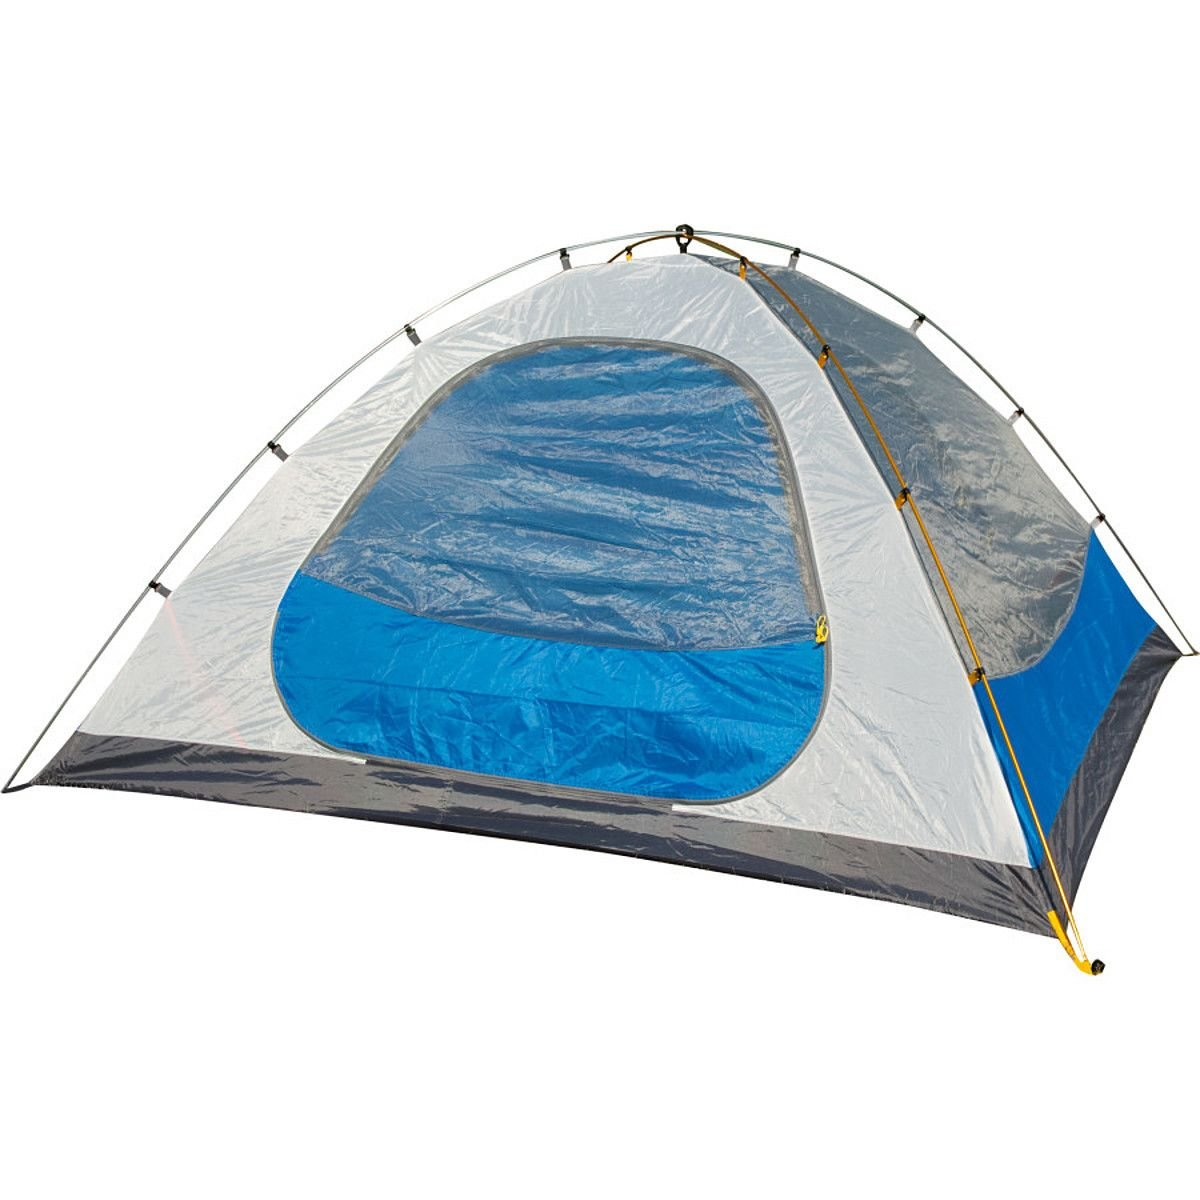 Amazon.com  Mountainsmith Morrison 3 Tent  Backpacking Tents  Sports u0026 Outdoors  sc 1 st  Amazon.com & Amazon.com : Mountainsmith Morrison 3 Tent : Backpacking Tents ...